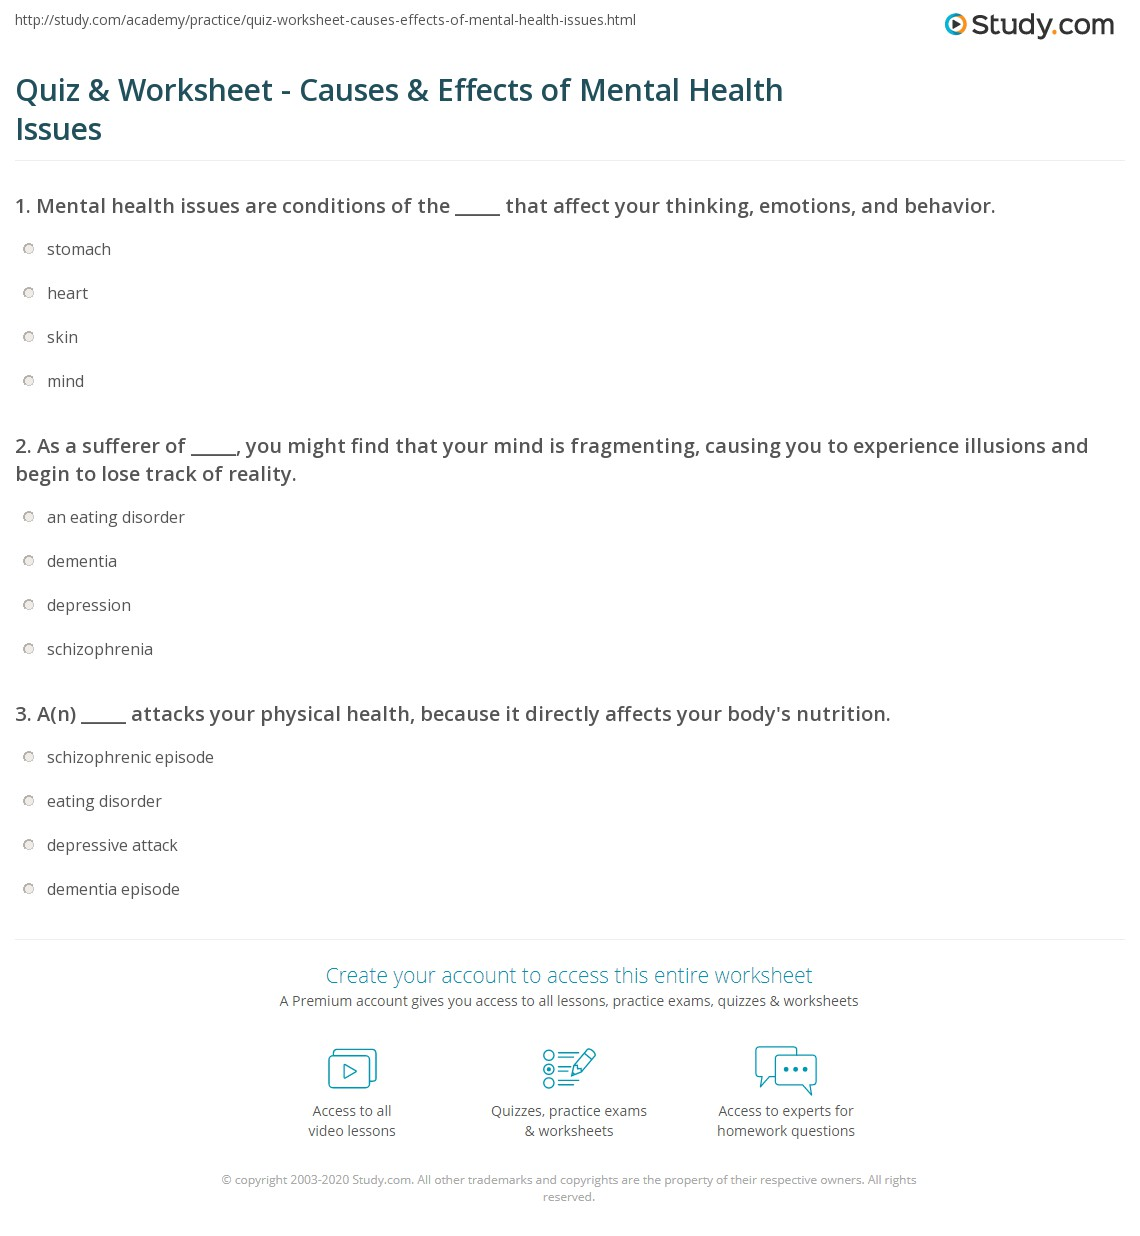 Quiz Worksheet Causes Effects Of Mental Health Issues Study